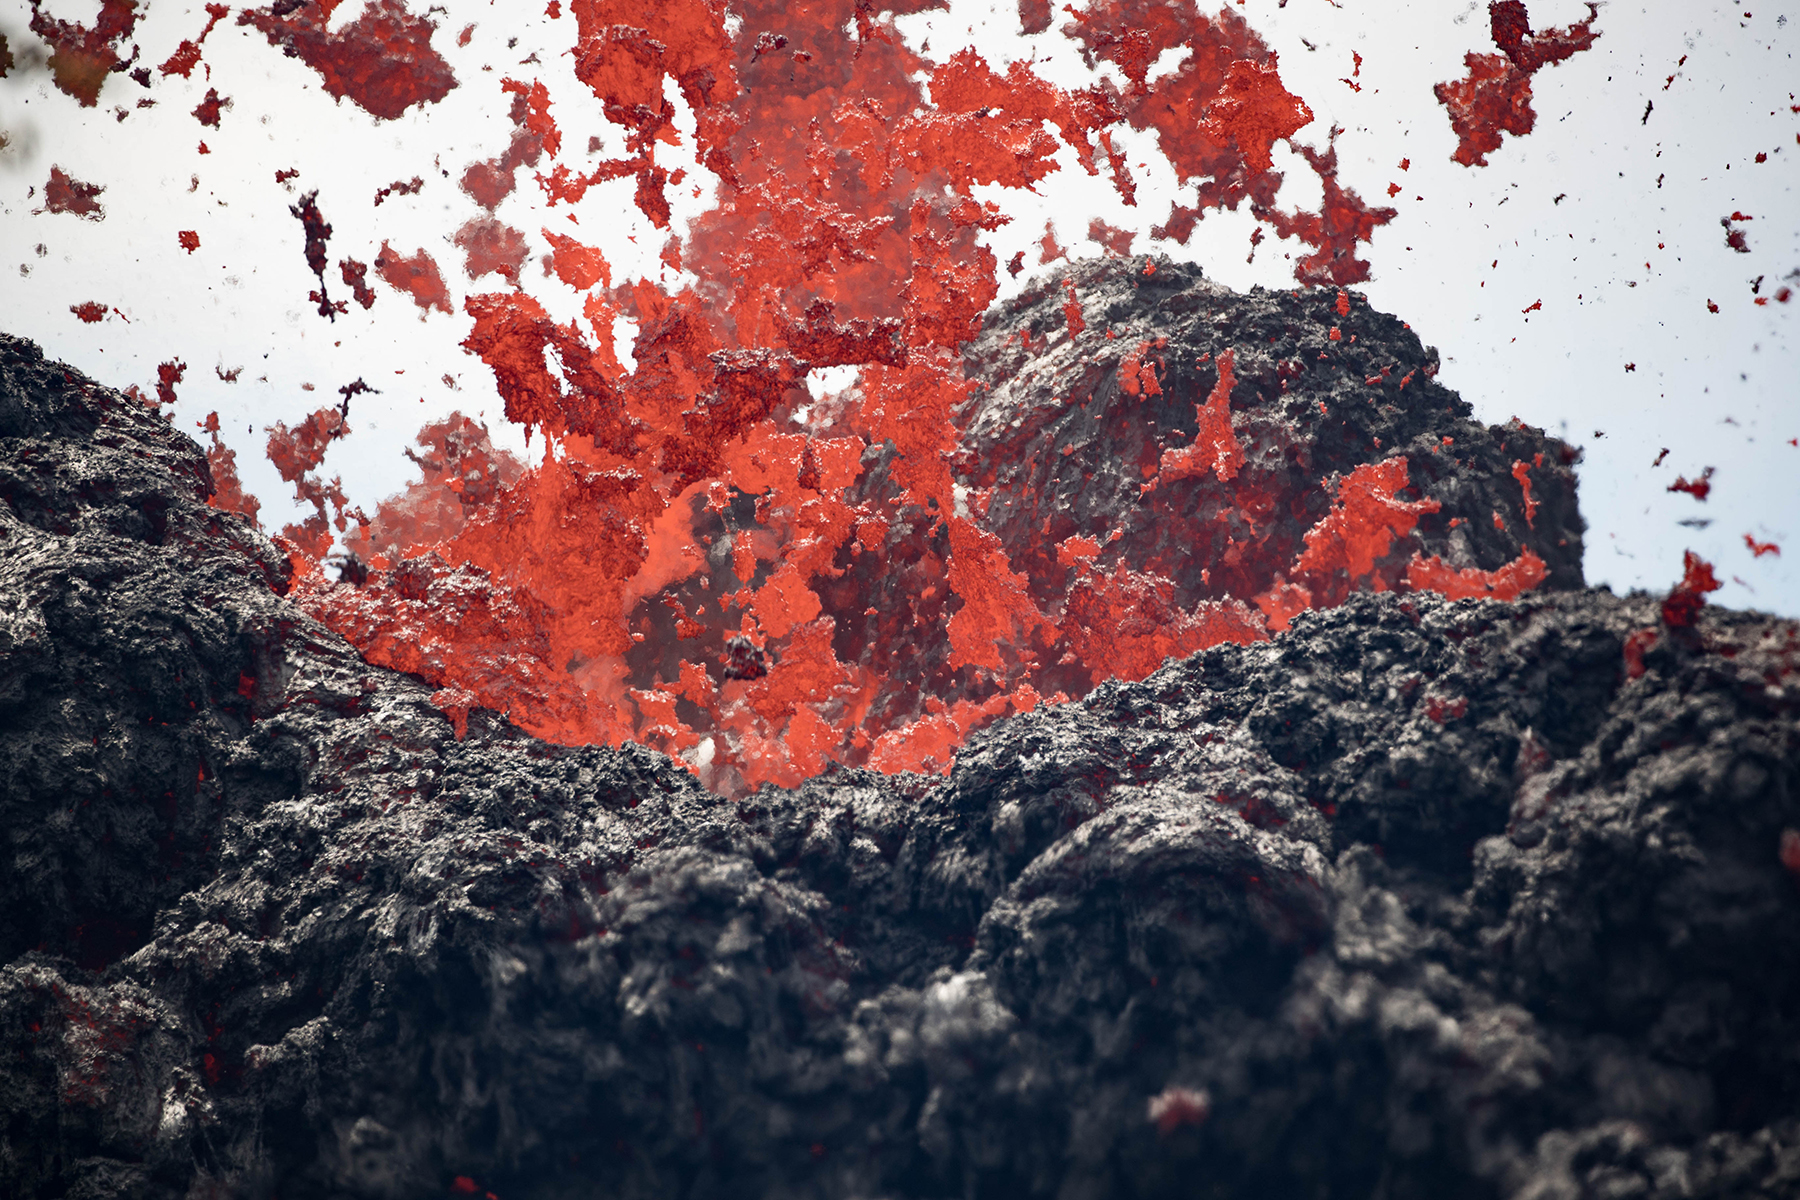 <p>Lava shoots into the air Saturday from a newly opened fissure in Lower Puna. The U.S. Geological Survey said 18 fissures, emitting lava and steam, have opened up on the Big island.</p>